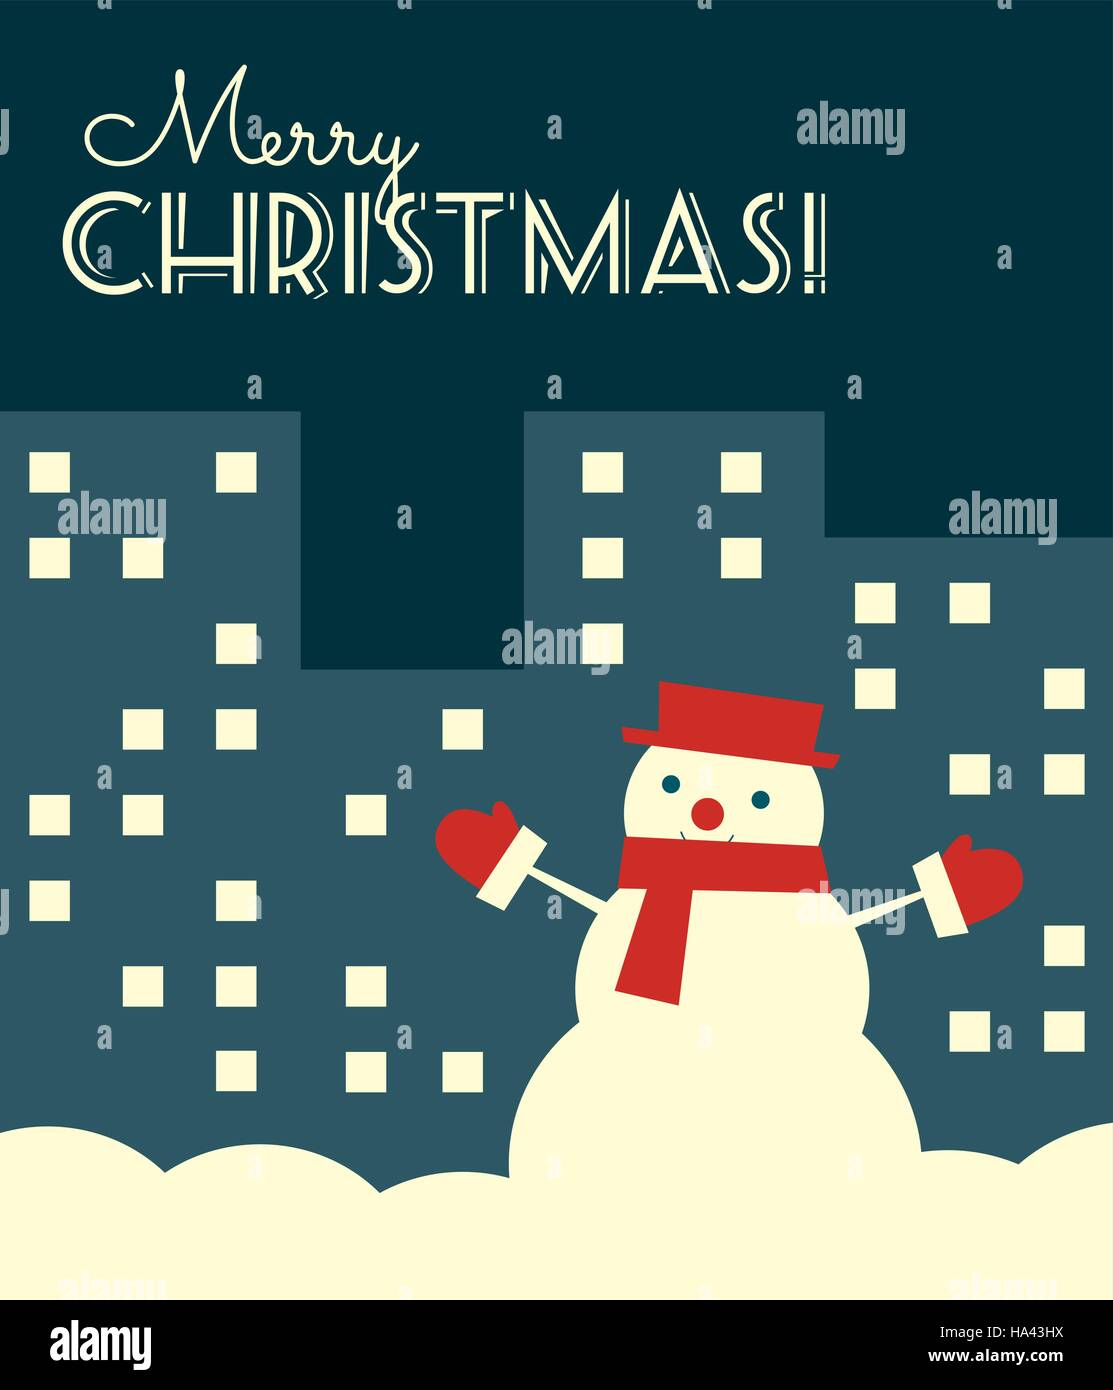 Vector illustration. Retro styled Christmas card with a snowman in a night city. Vertical format. - Stock Vector